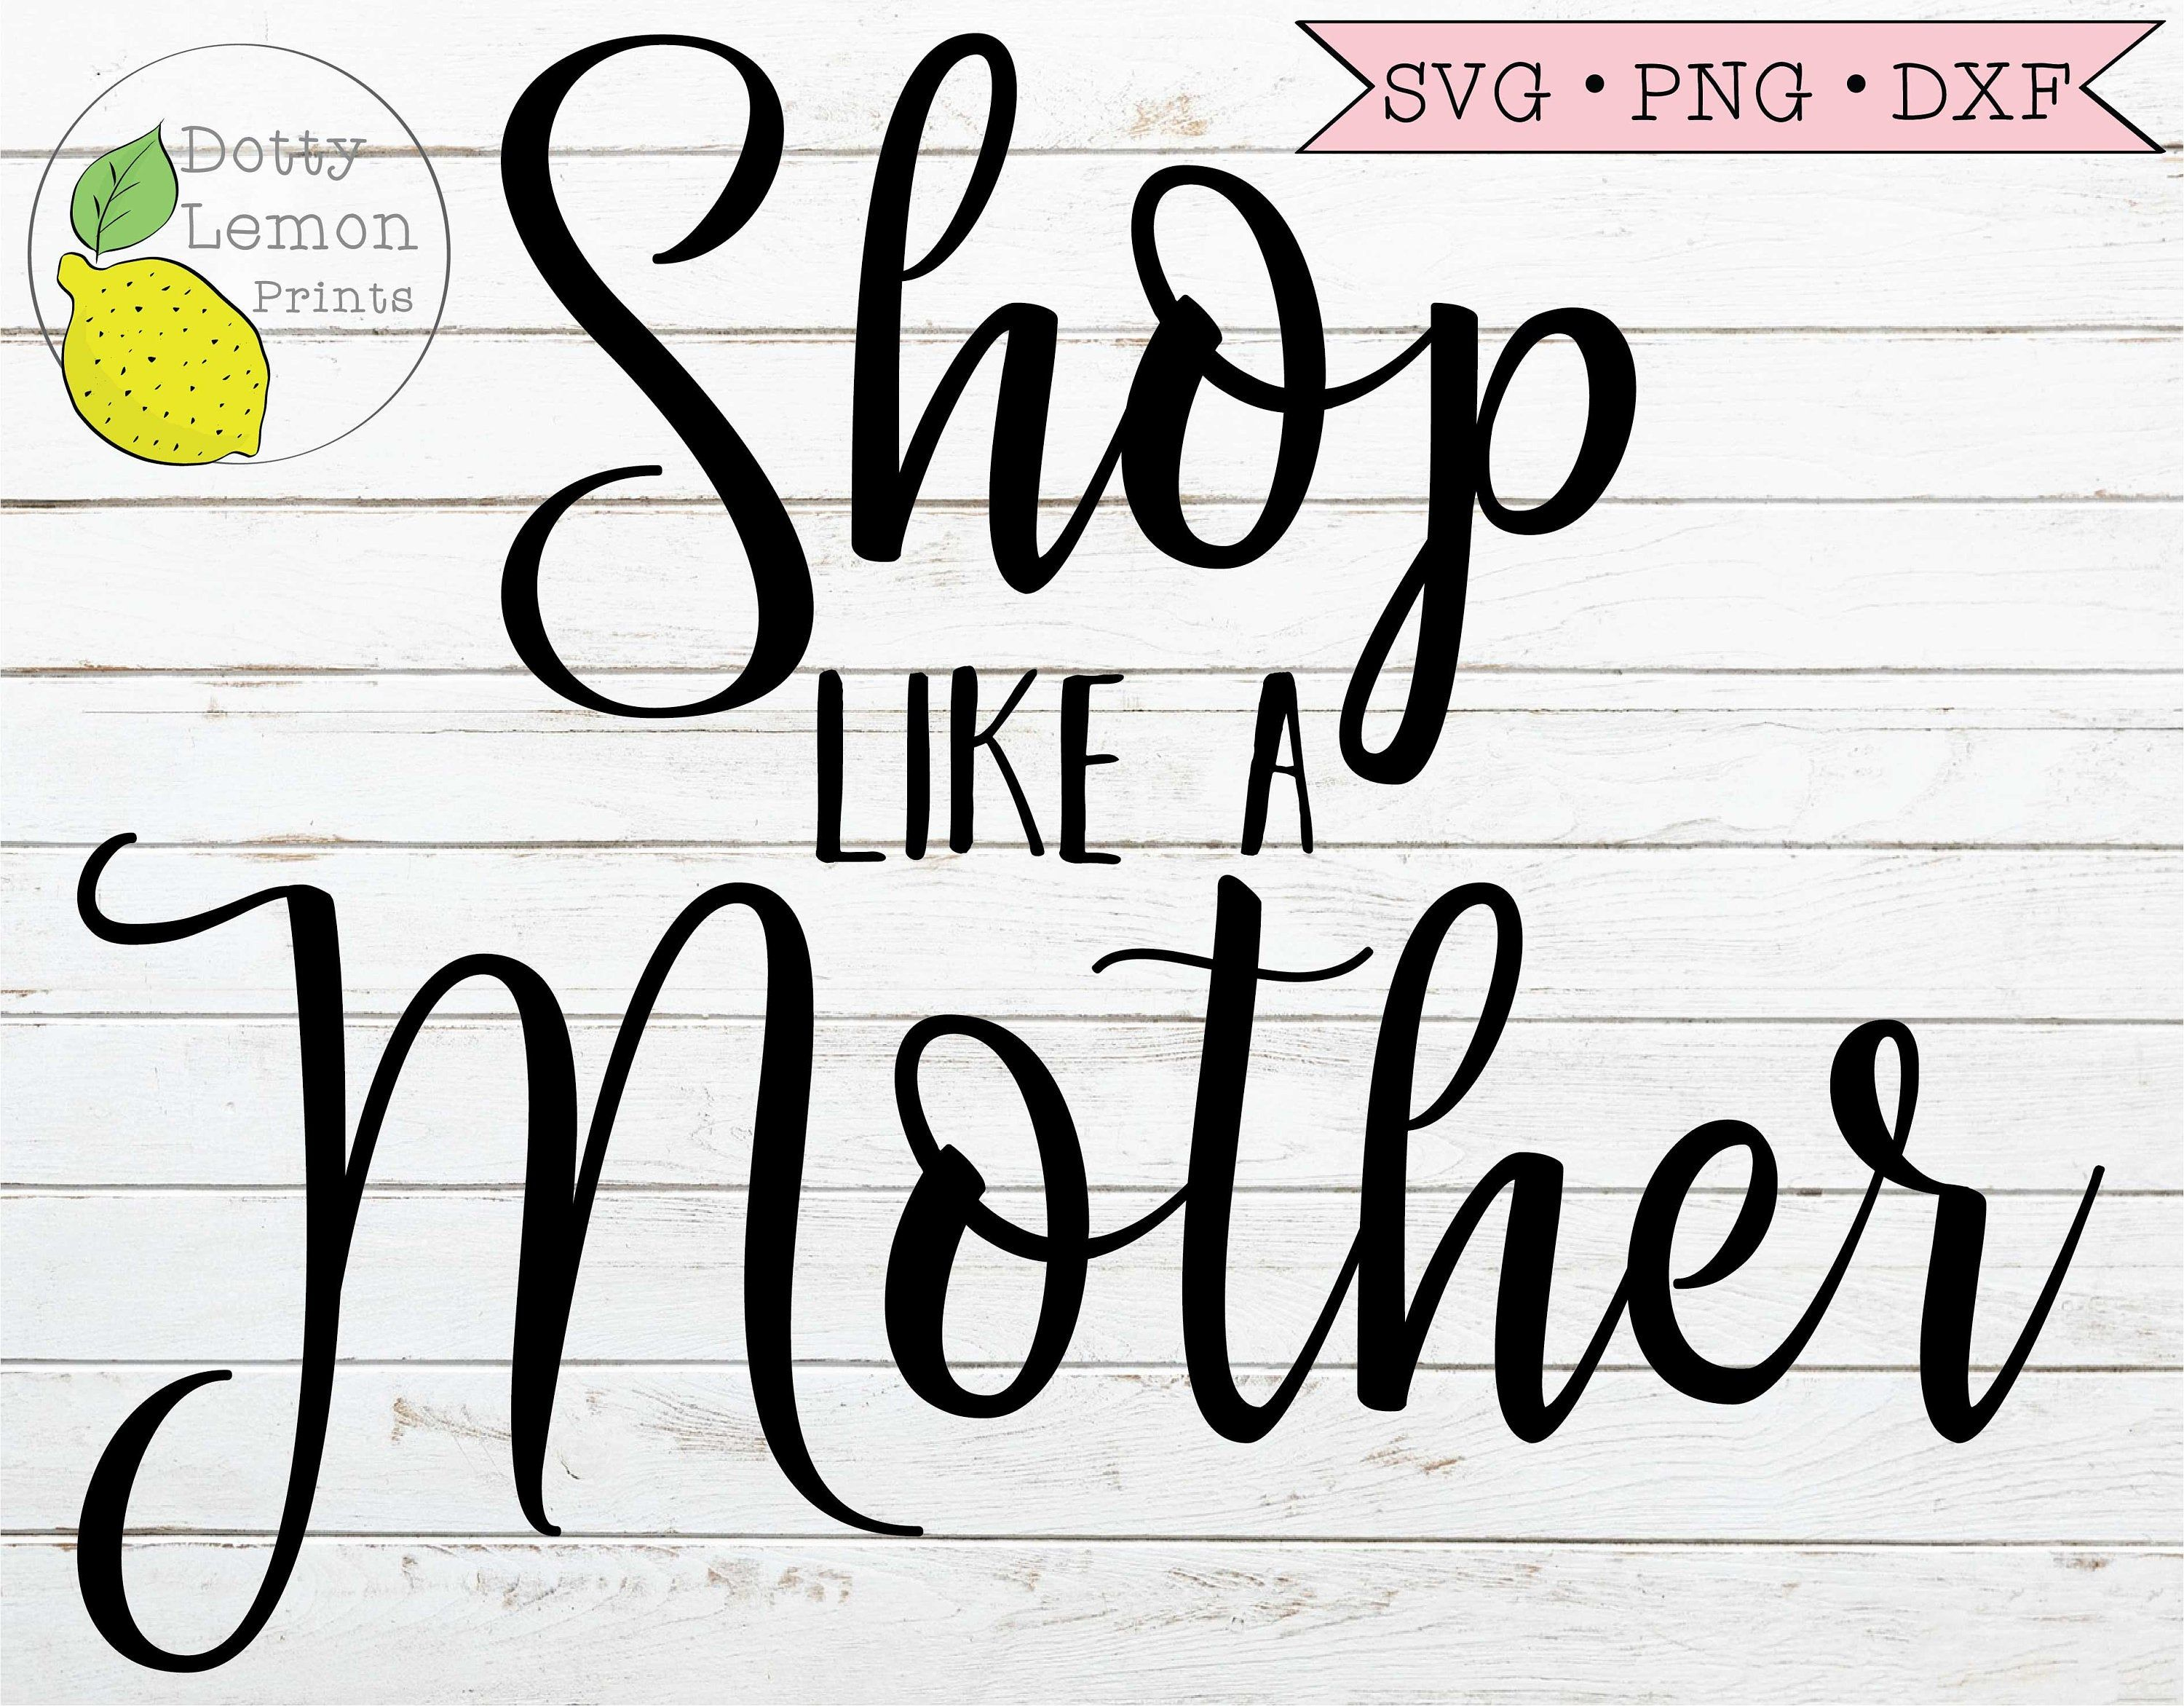 Black Friday SVG, Christmas Shopping svg dxf png, Shop like a Mother svg, Mom Life Instant download Cutting File for Cricut or Silhouette